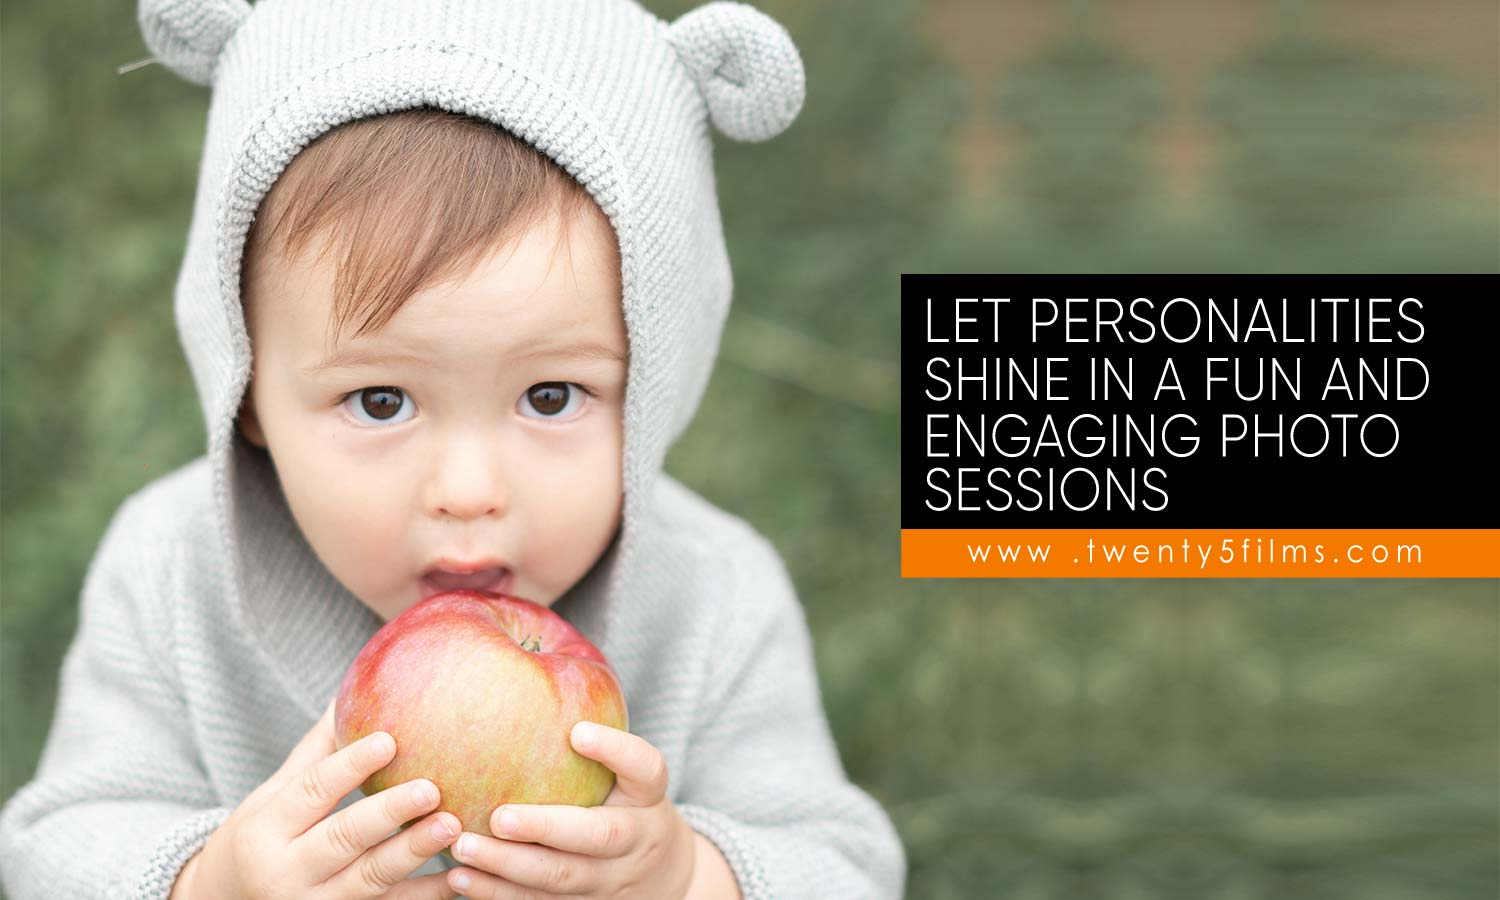 Let personalities shine in a fun and engaging photo sessions